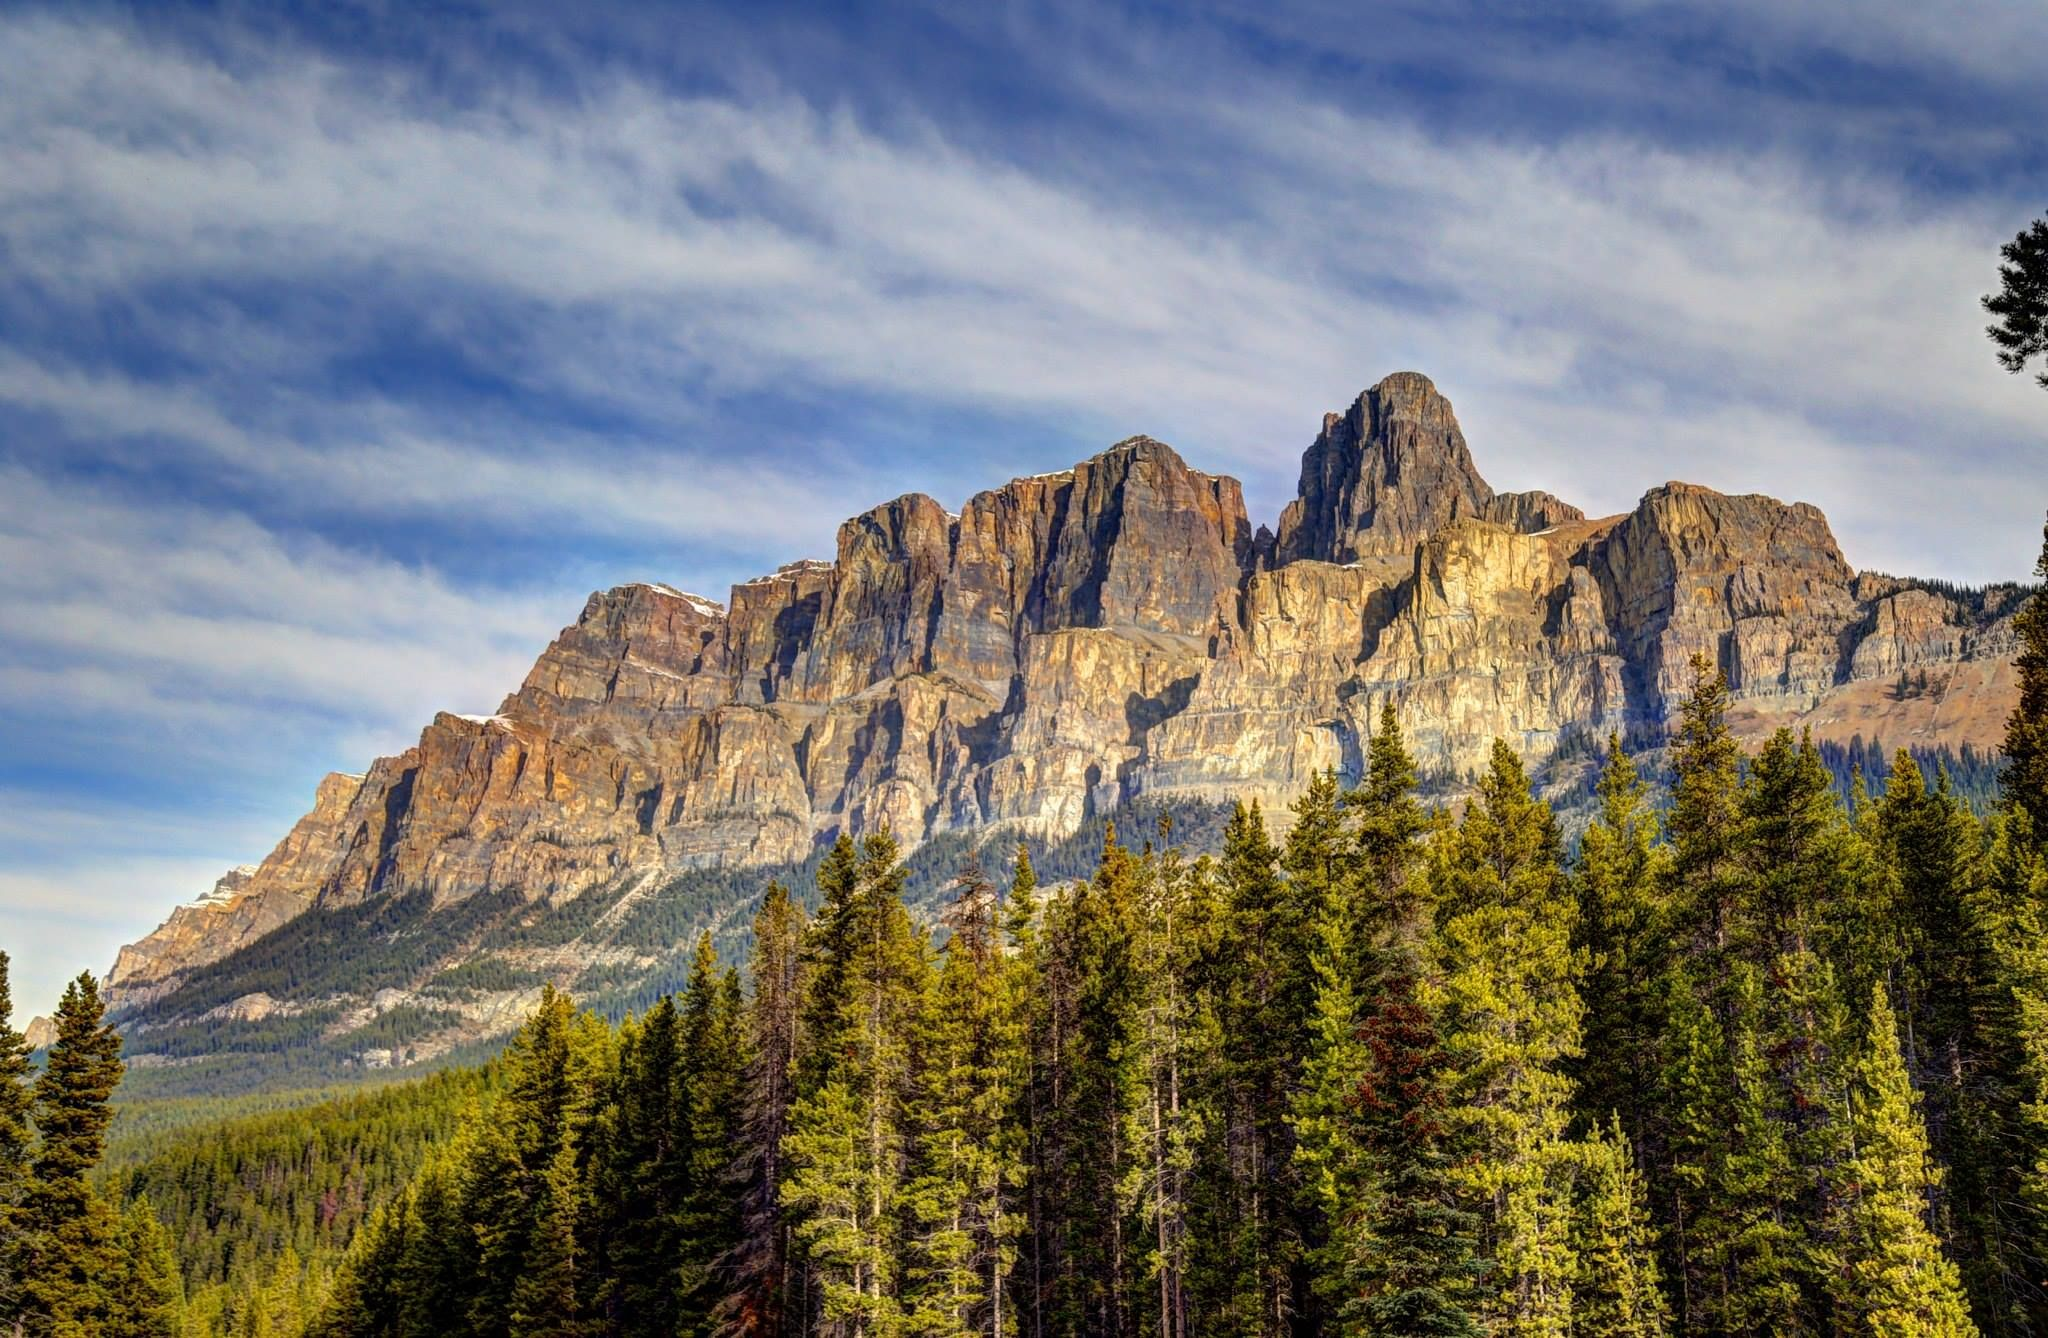 Castle Mountain on the Banff Parkway on the way to Lake Louise